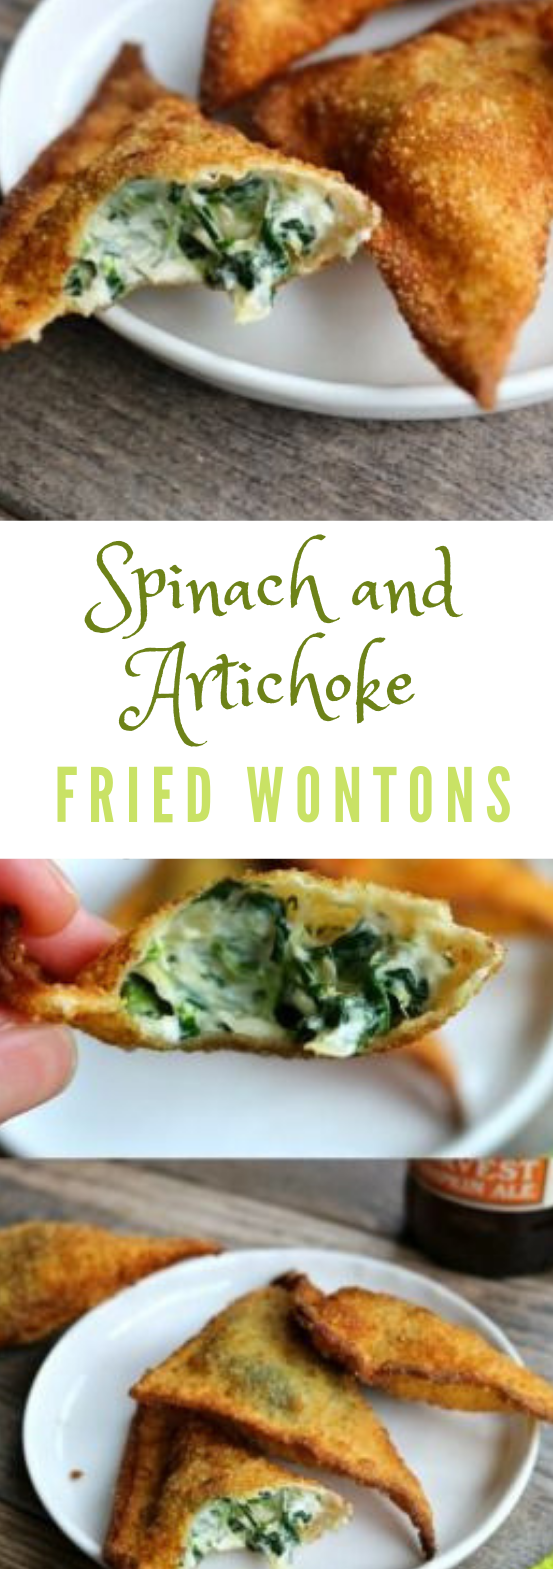 Spinach and Artichoke Fried Wontons #vegetarian #spinach #crockpotspinachandartichokedip